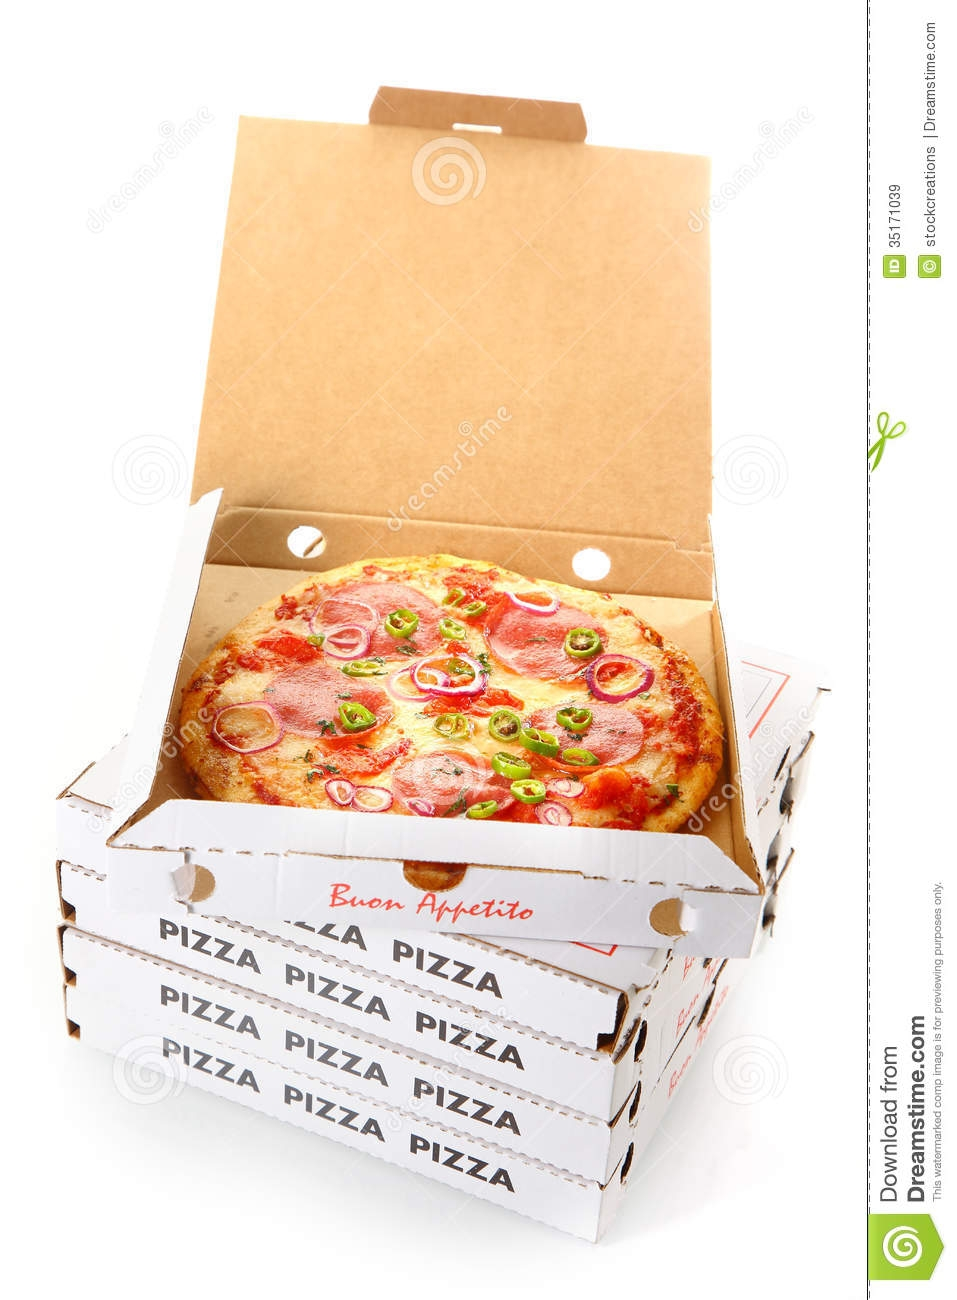 Open Pizza Box Clipart.